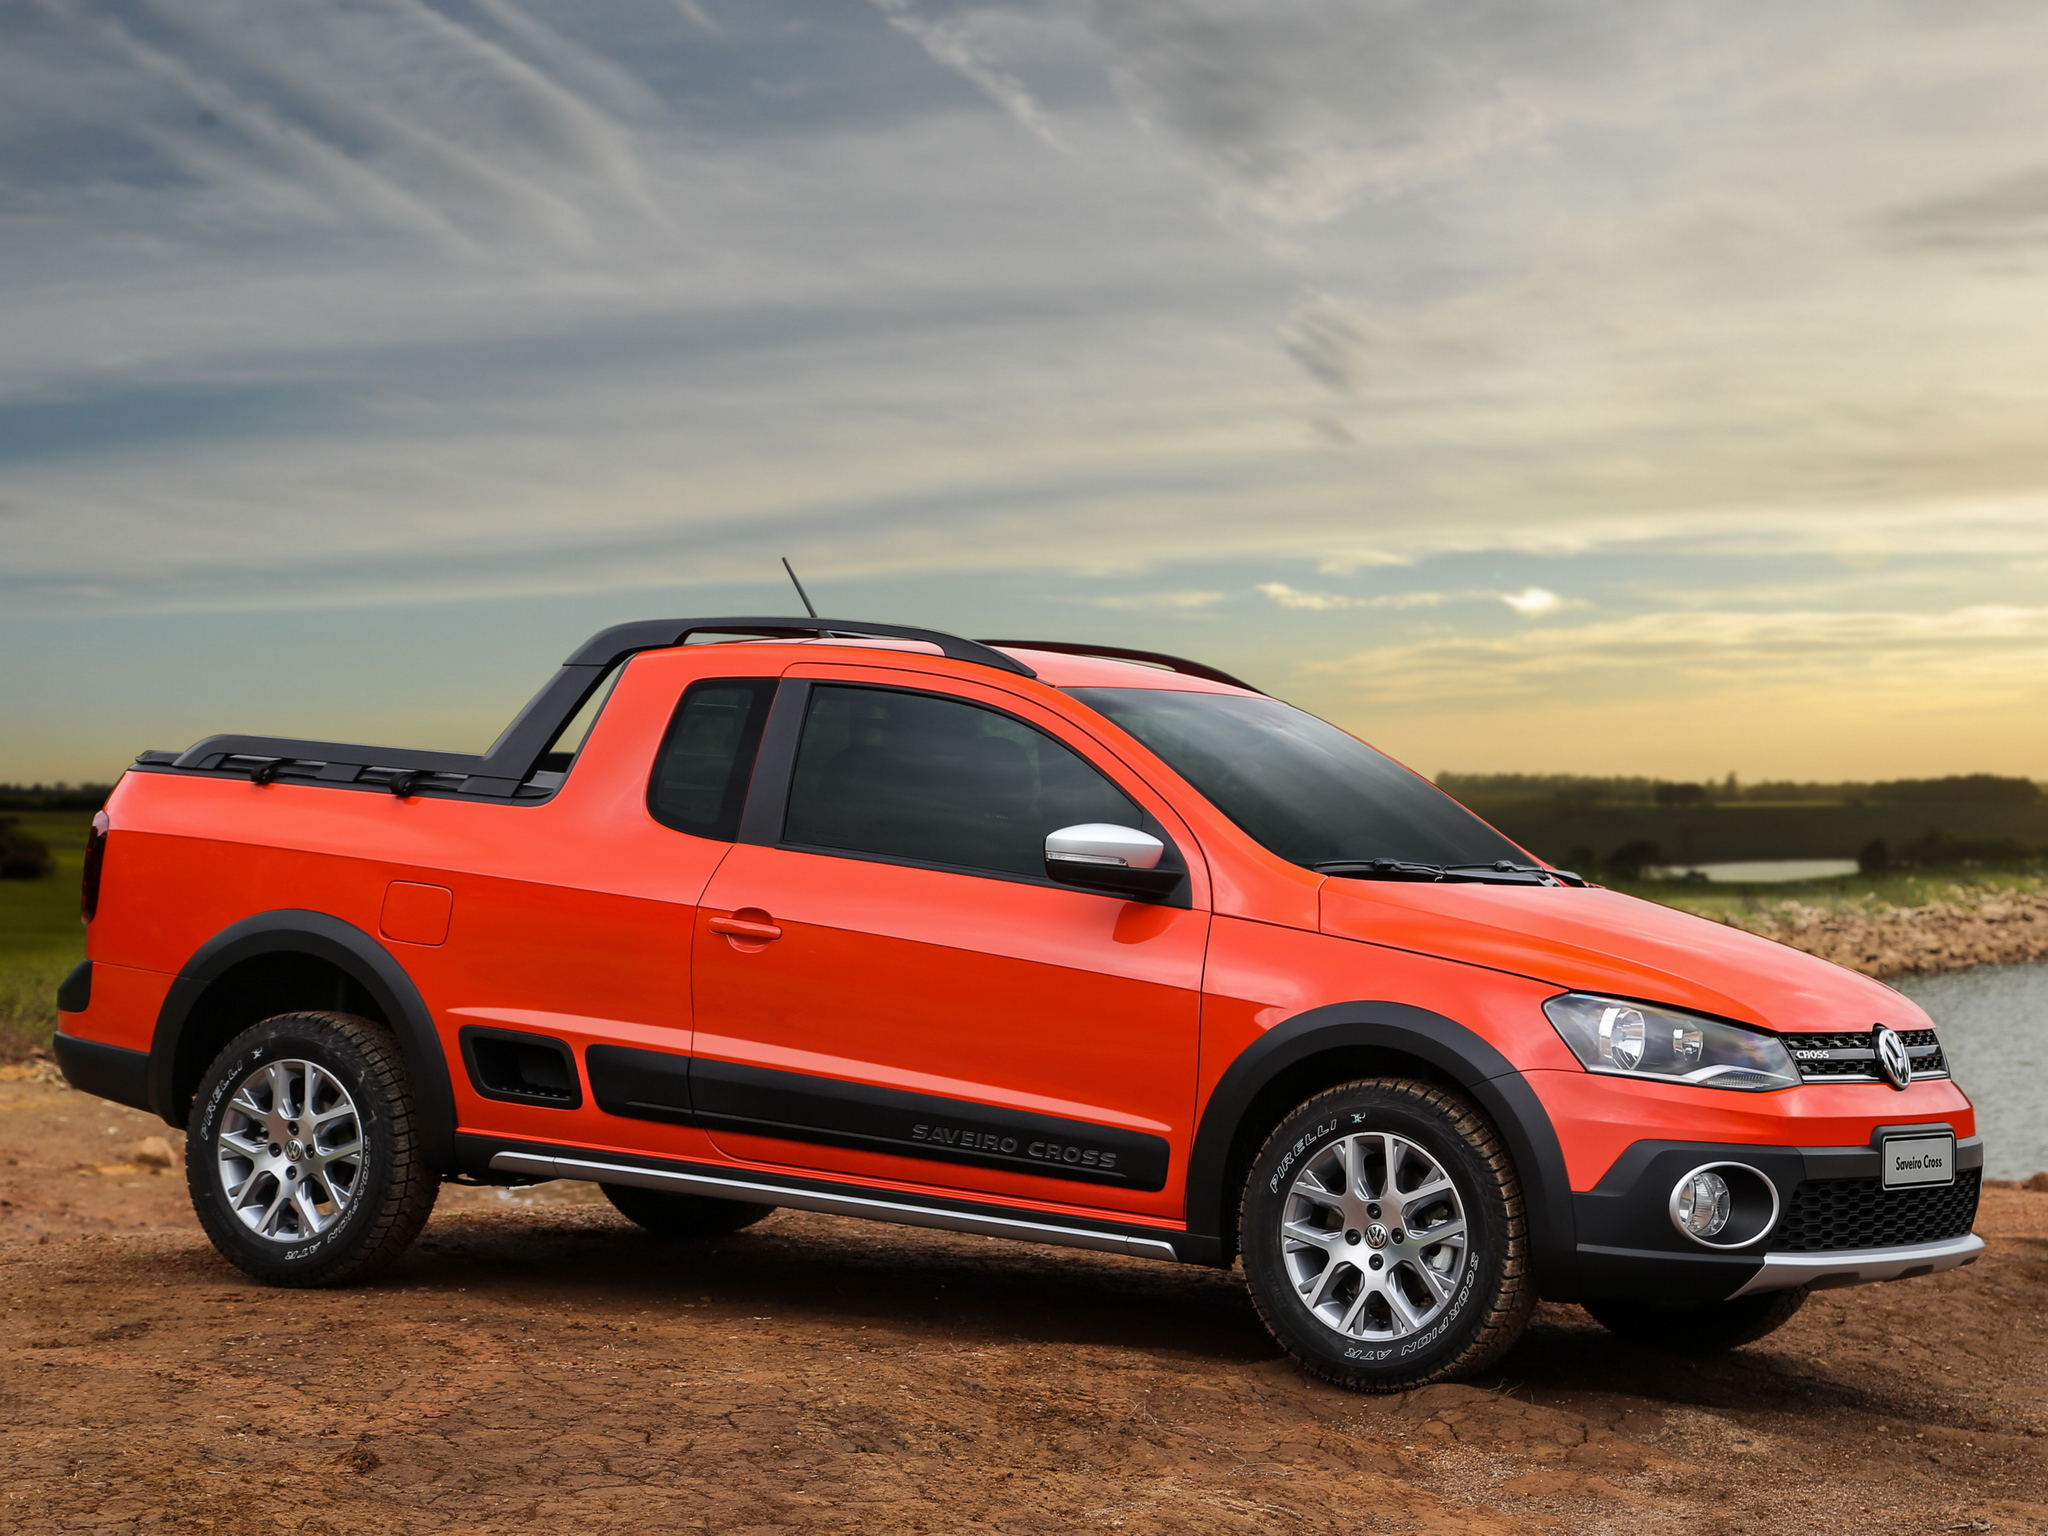 Hondas For Sale >> 2014 Volkswagen Saveiro Cross Is a Funky Brazilian Pickup [Video] - autoevolution